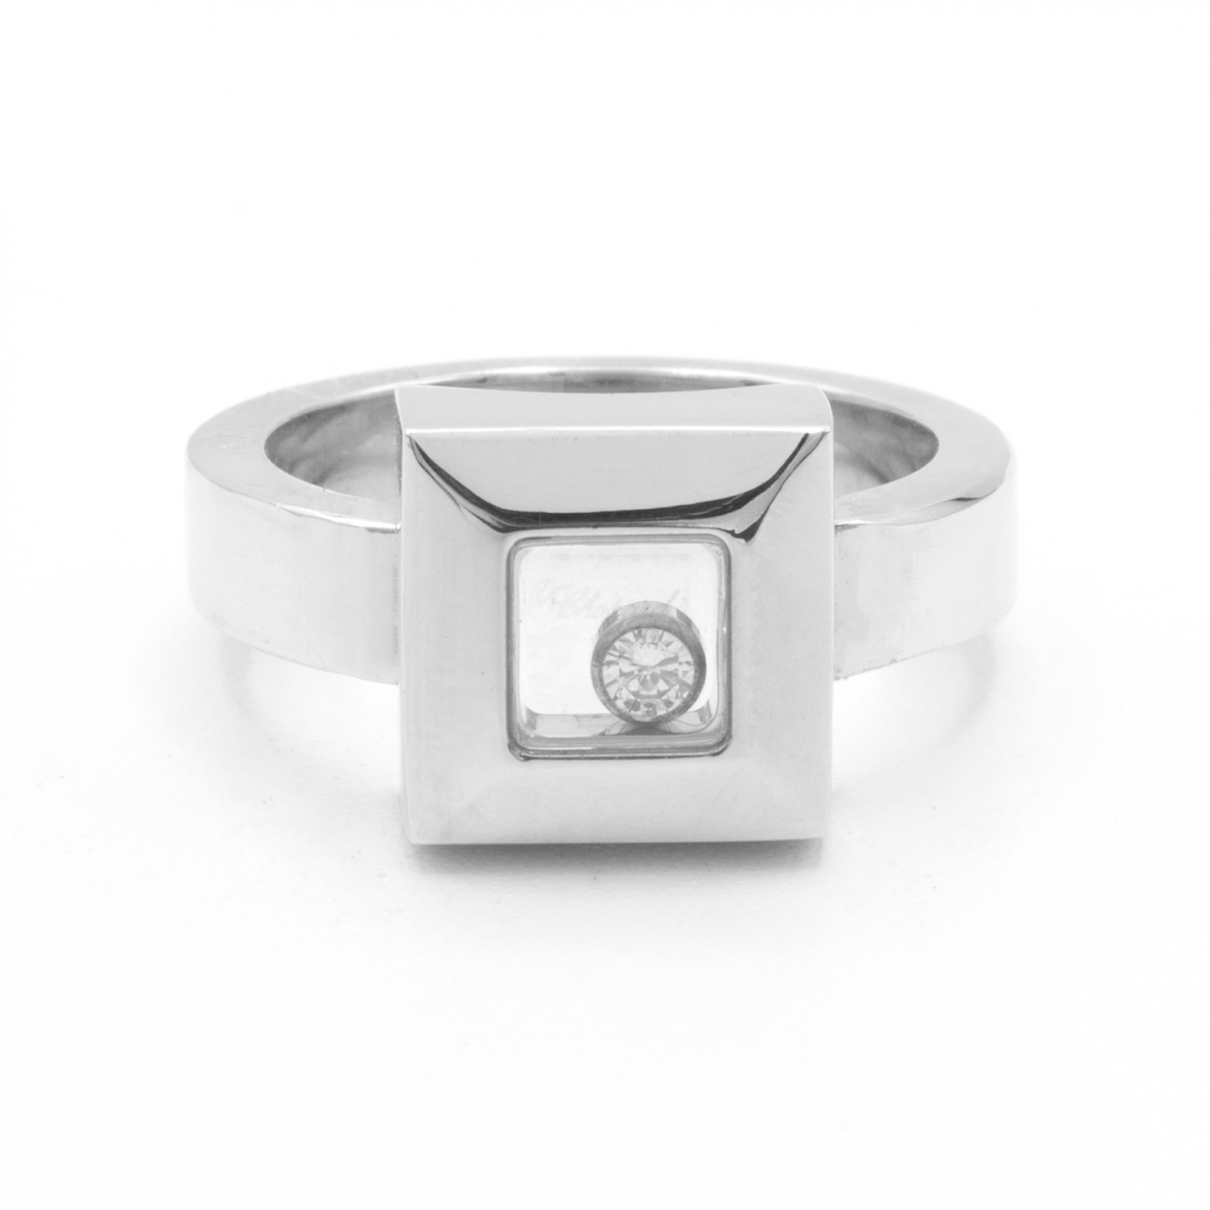 Chopard - Bague Happy Diamonds pour femme en or blanc - argente